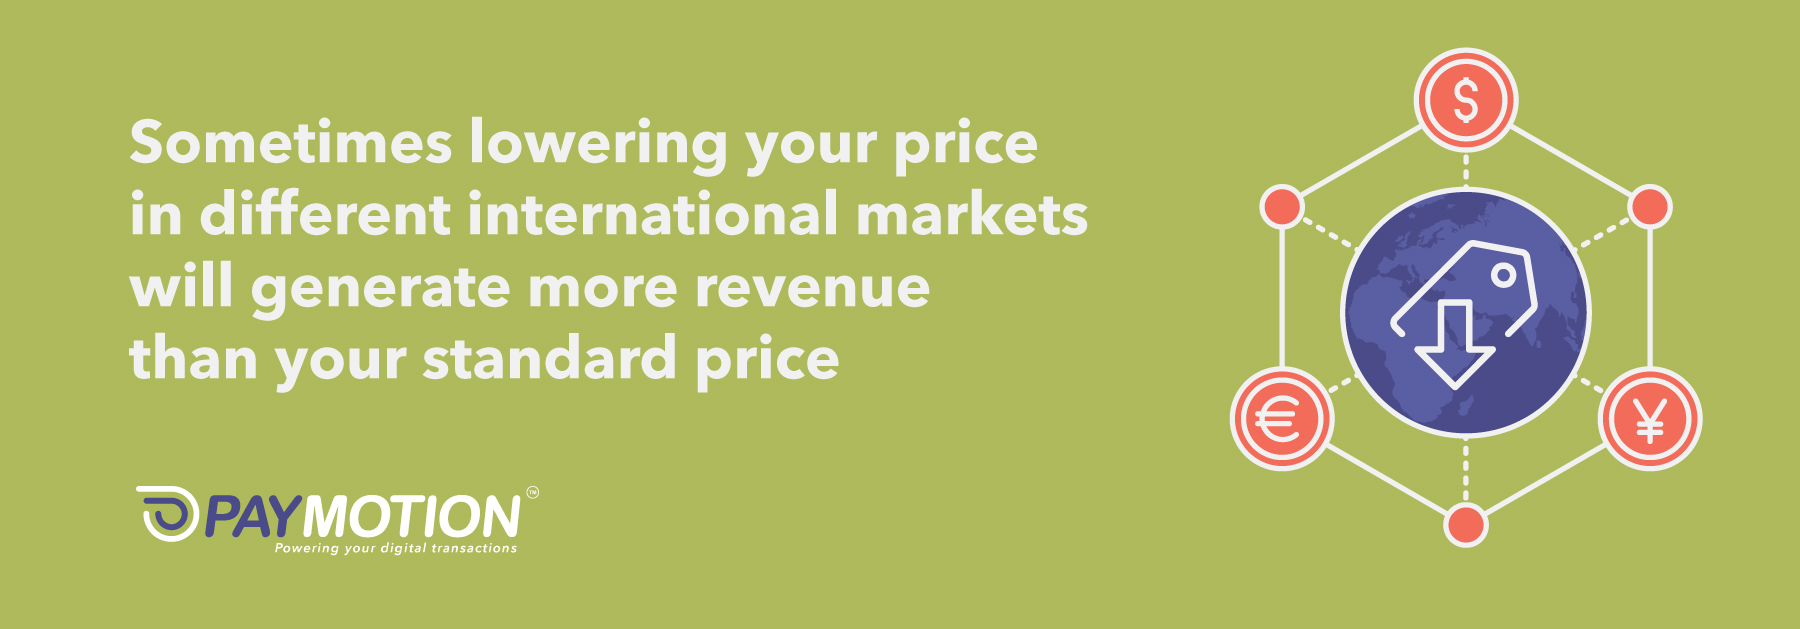 Global Growth. Lowering prices in international markets.